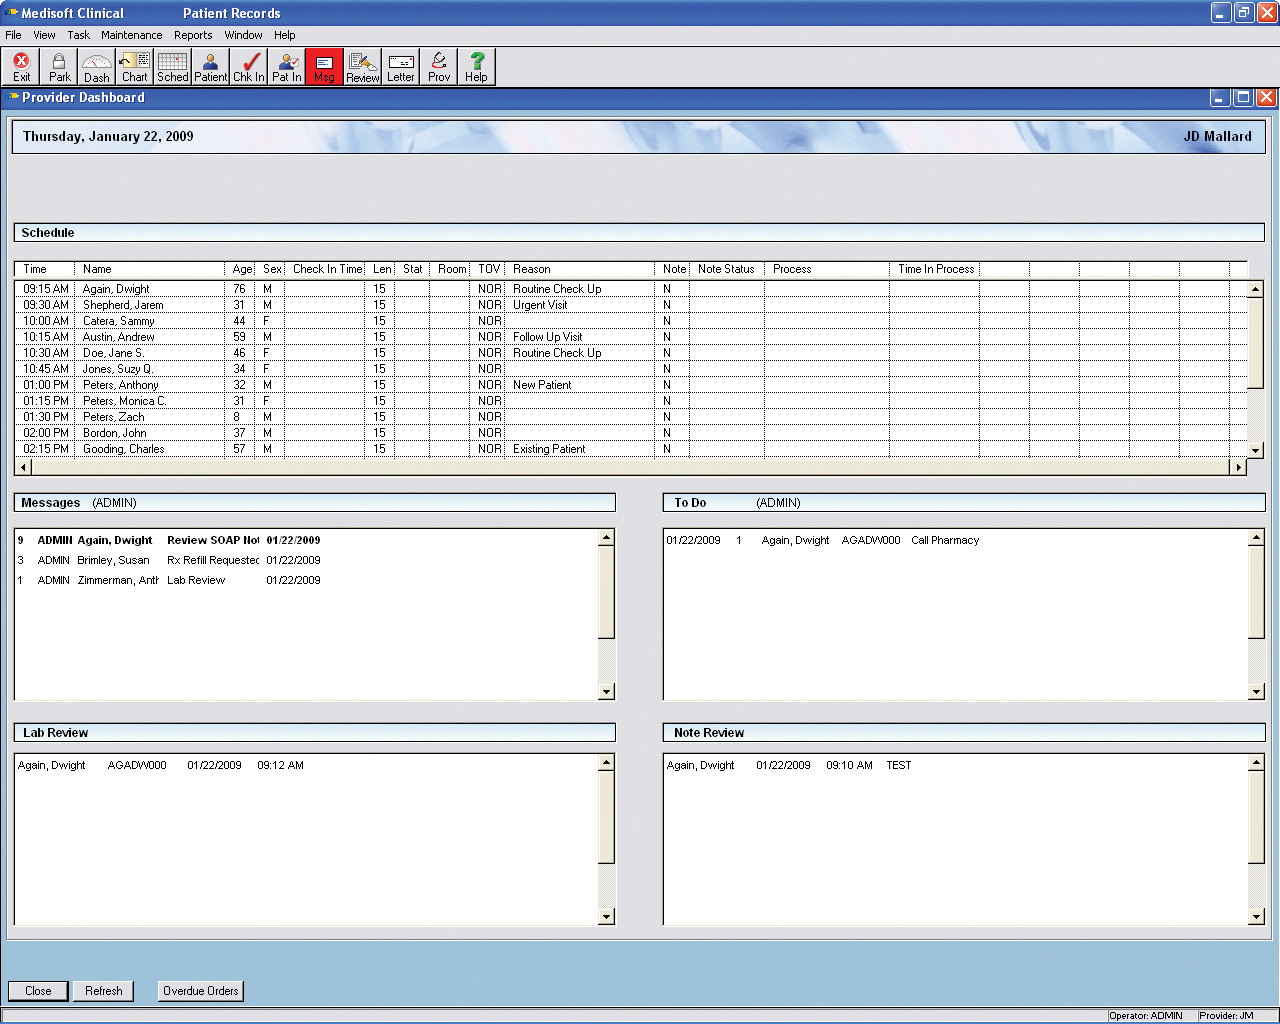 Medisoft Clinical Software - 2